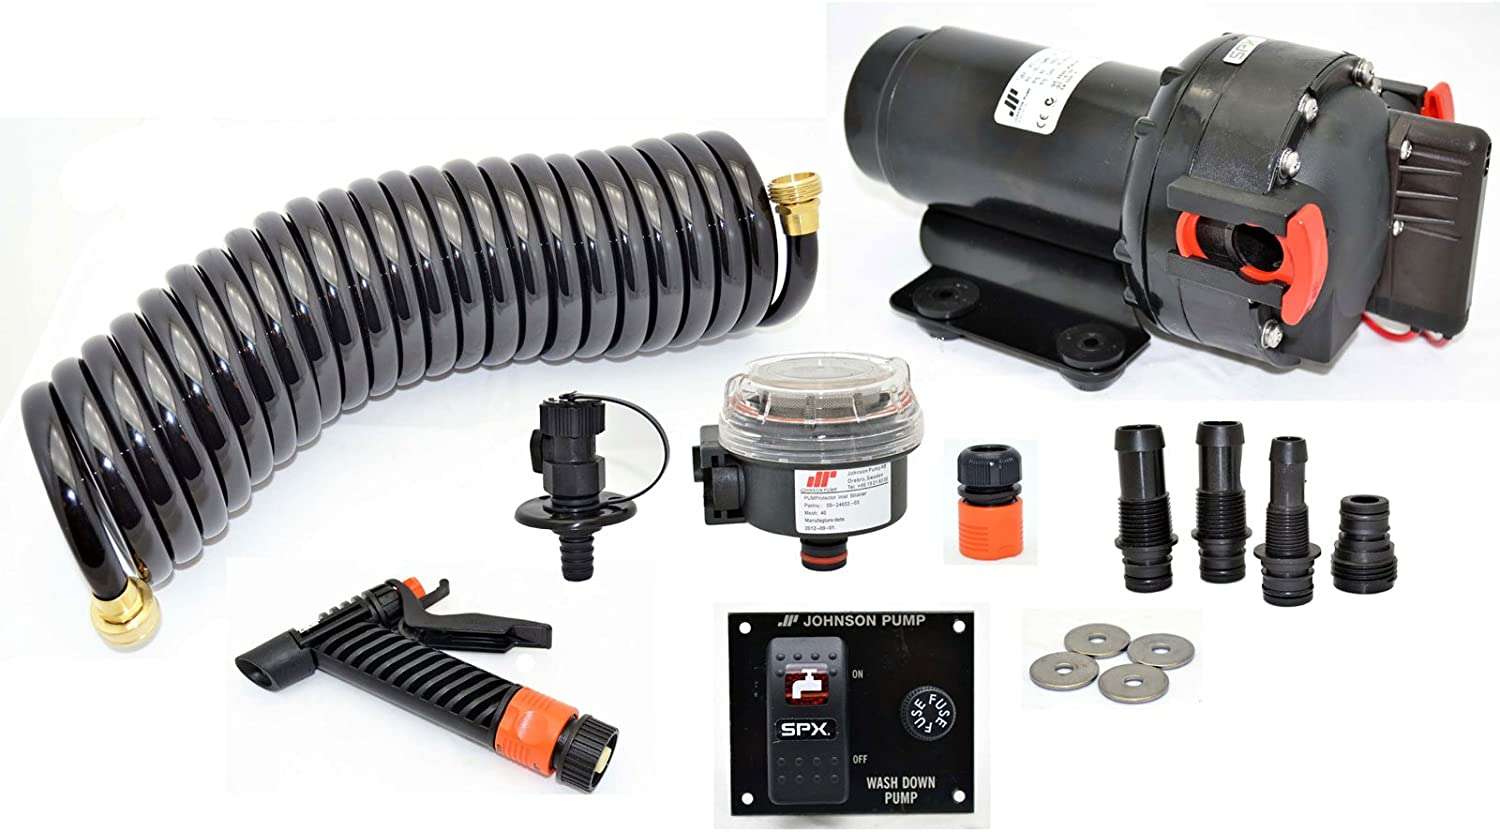 Johnson Pump 65434 Aqua Jet Wash Down 5.2 GPM Pump Kit - 12V